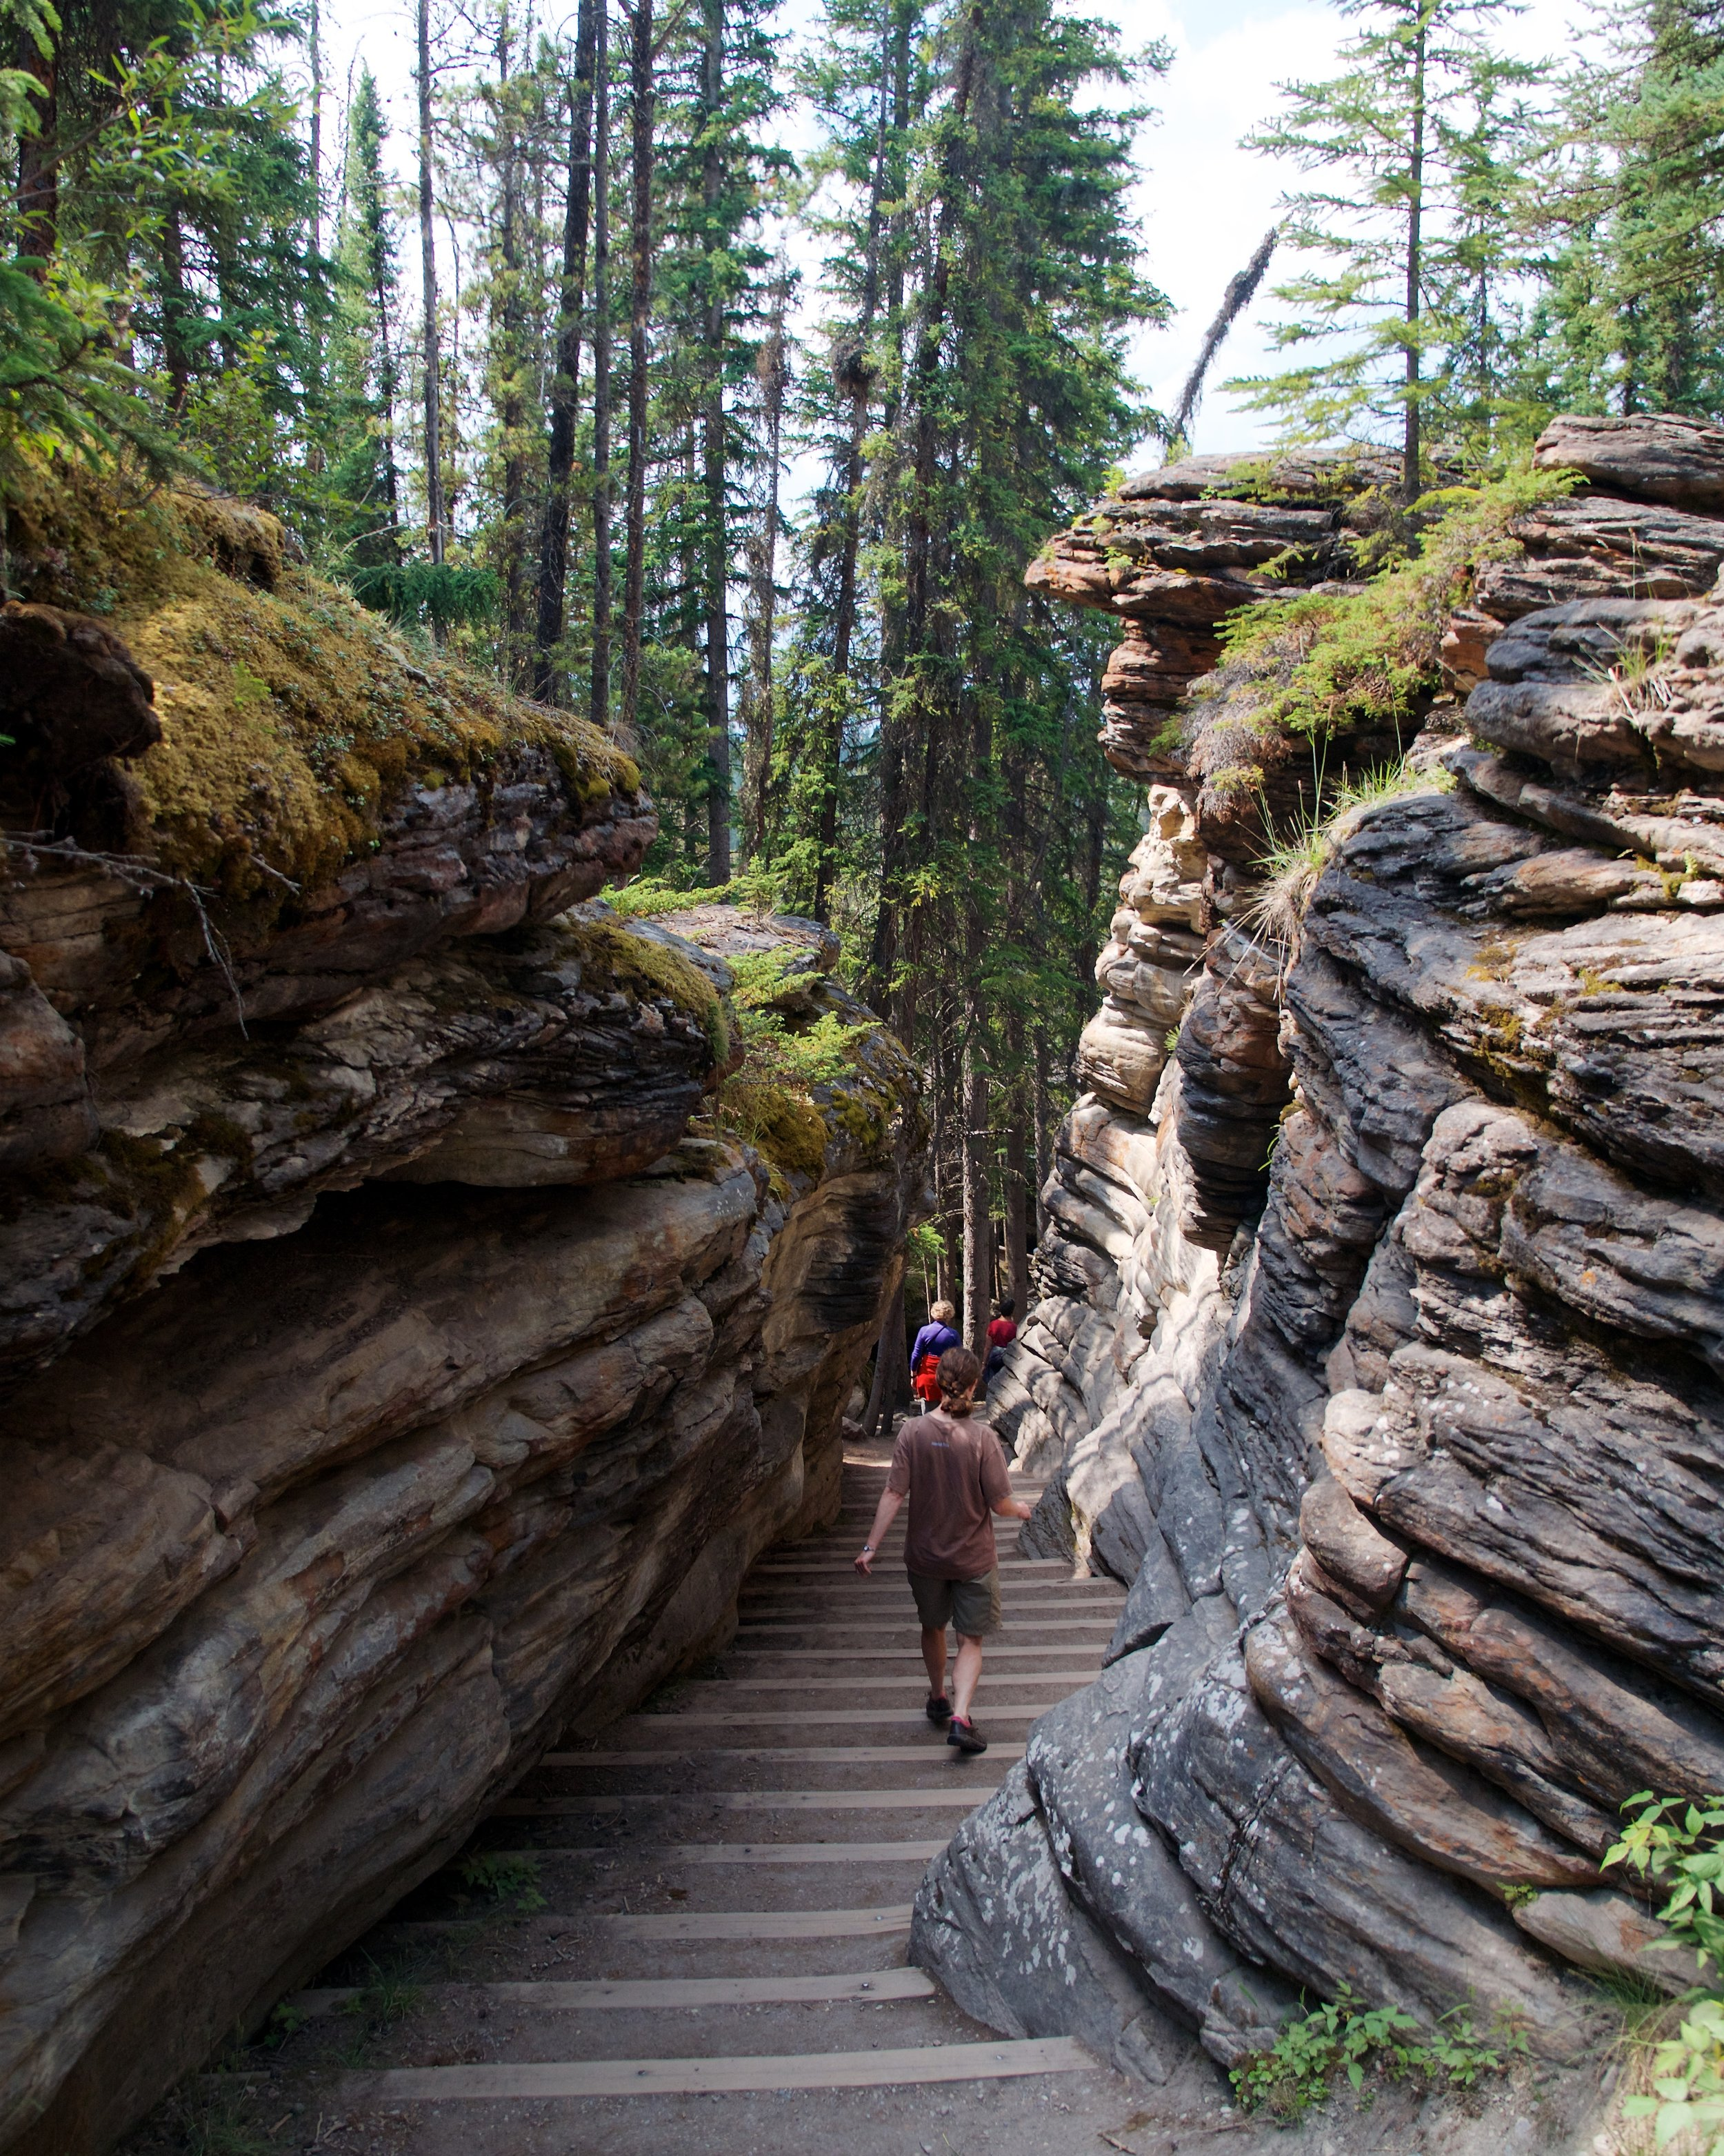 One of several paths through canyons formed by the falls